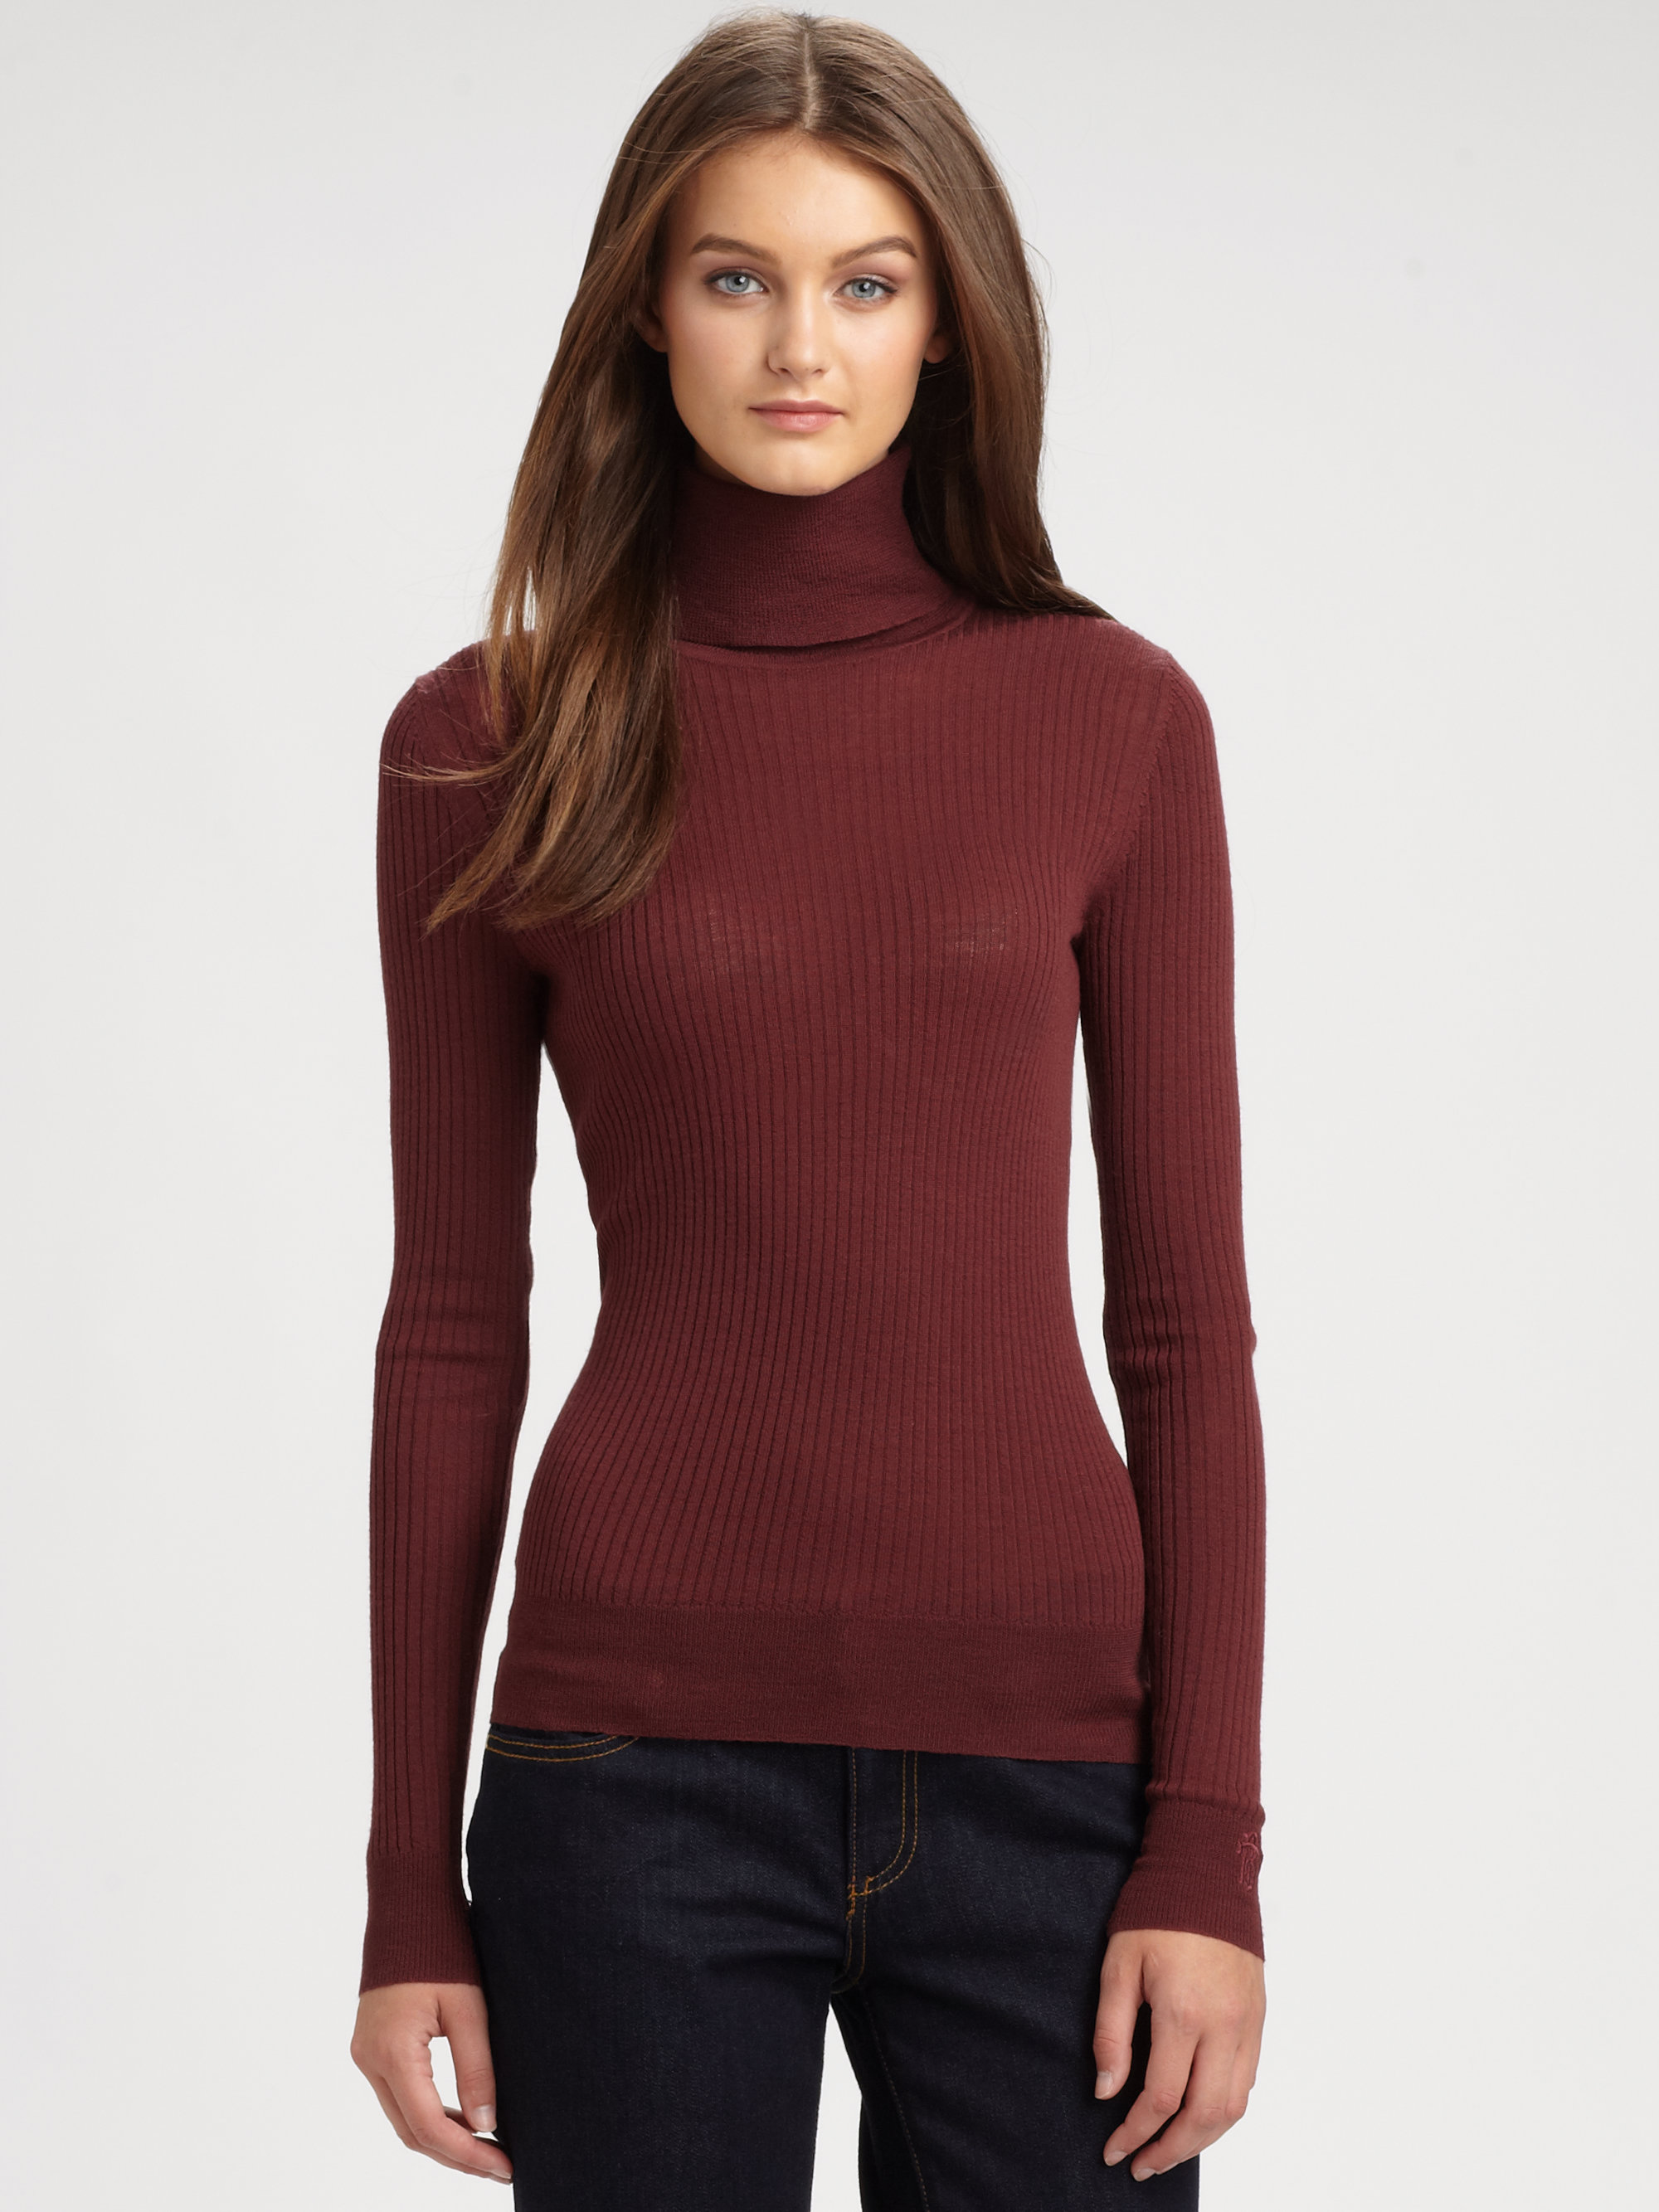 Tory burch Wool Antonia Turtleneck in Red | Lyst